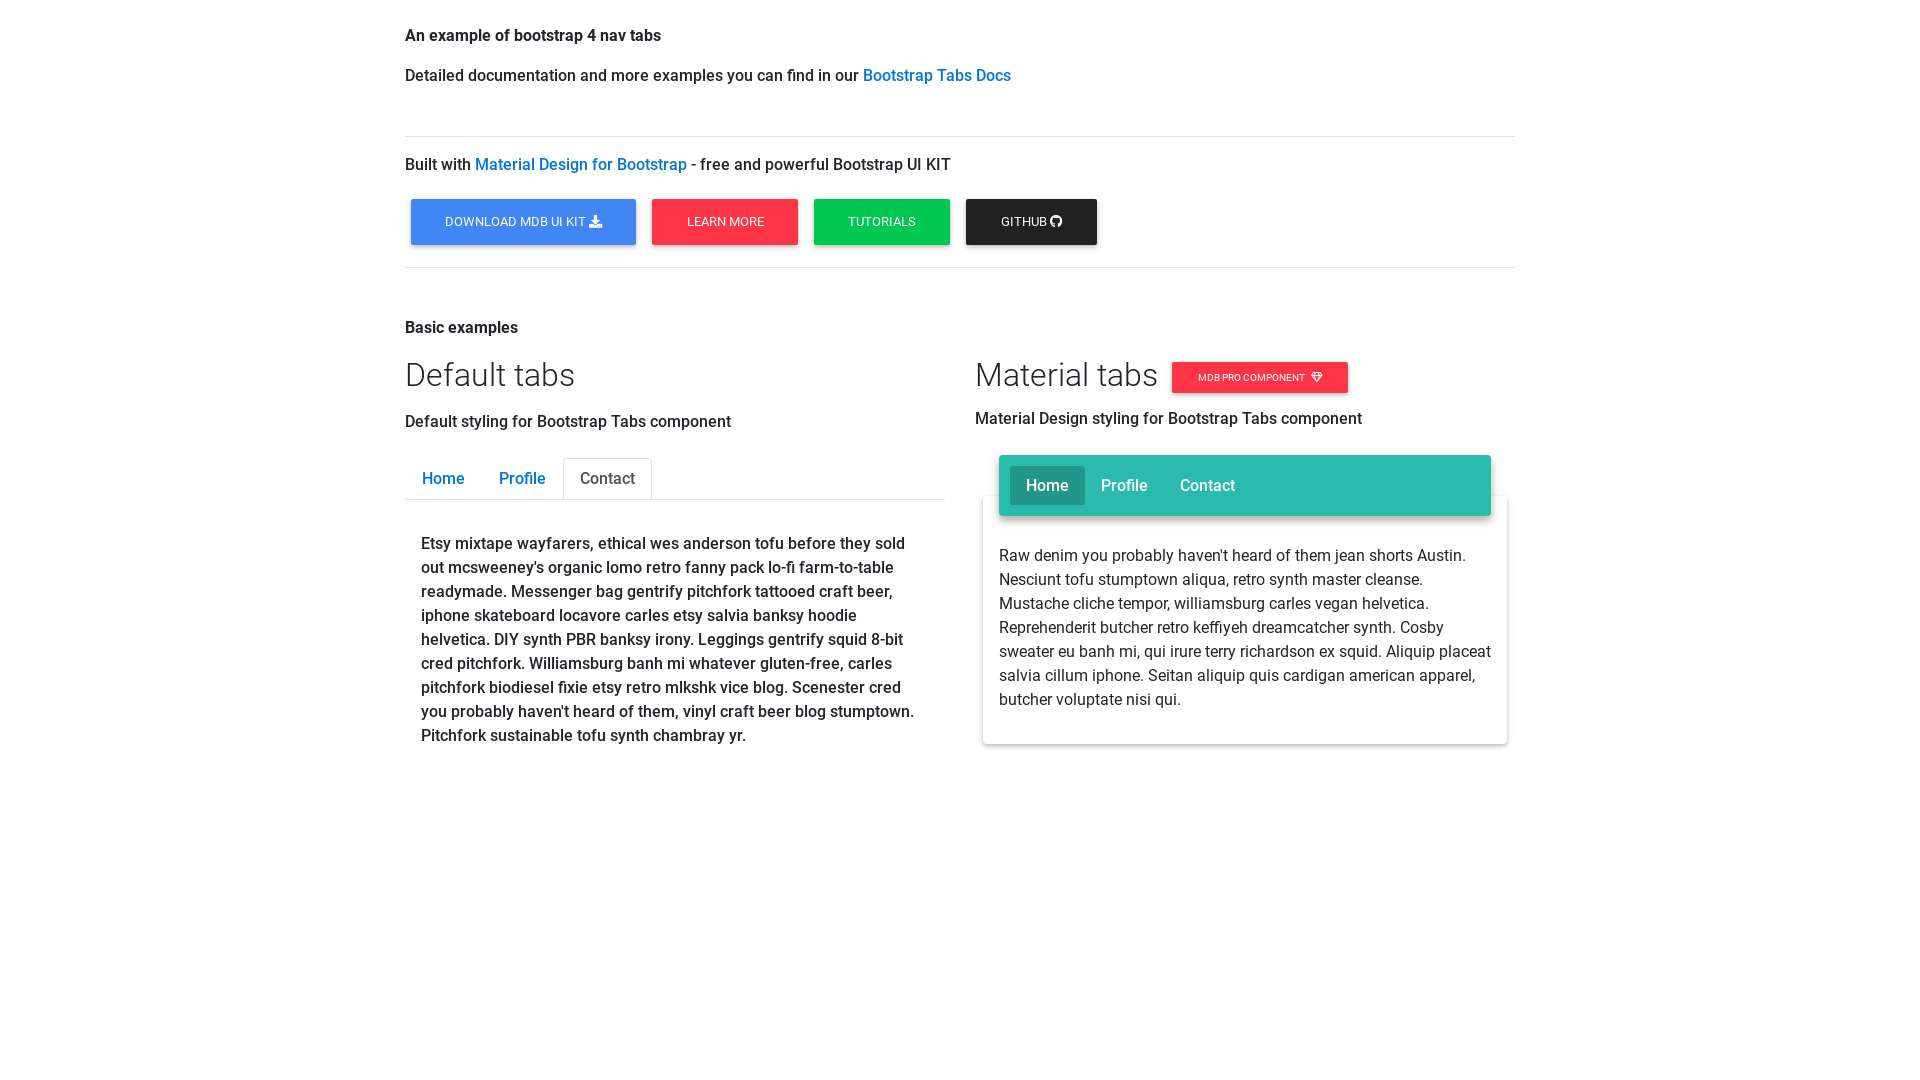 bootstrap 4 nav tabs example - Material Design for Bootstrap